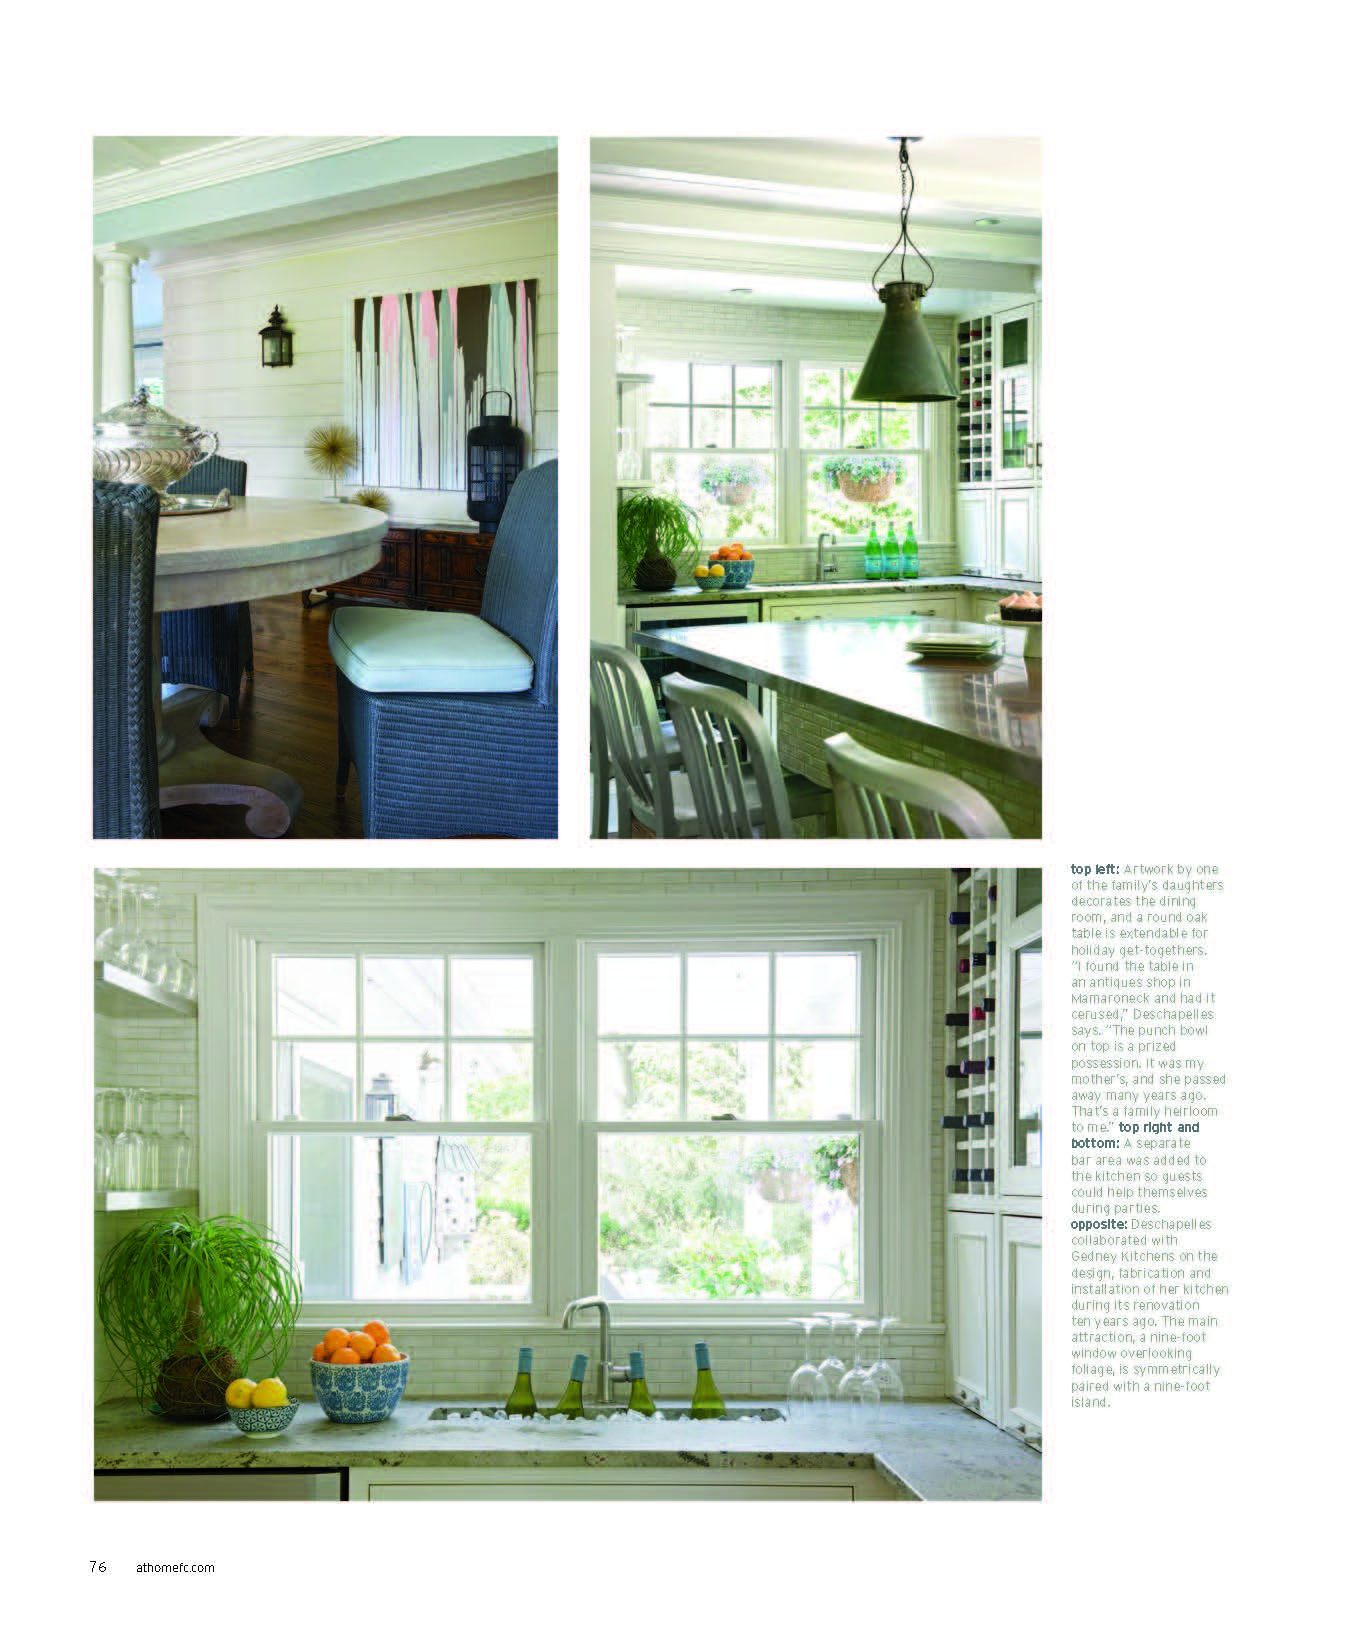 At Home_Page_05.jpg